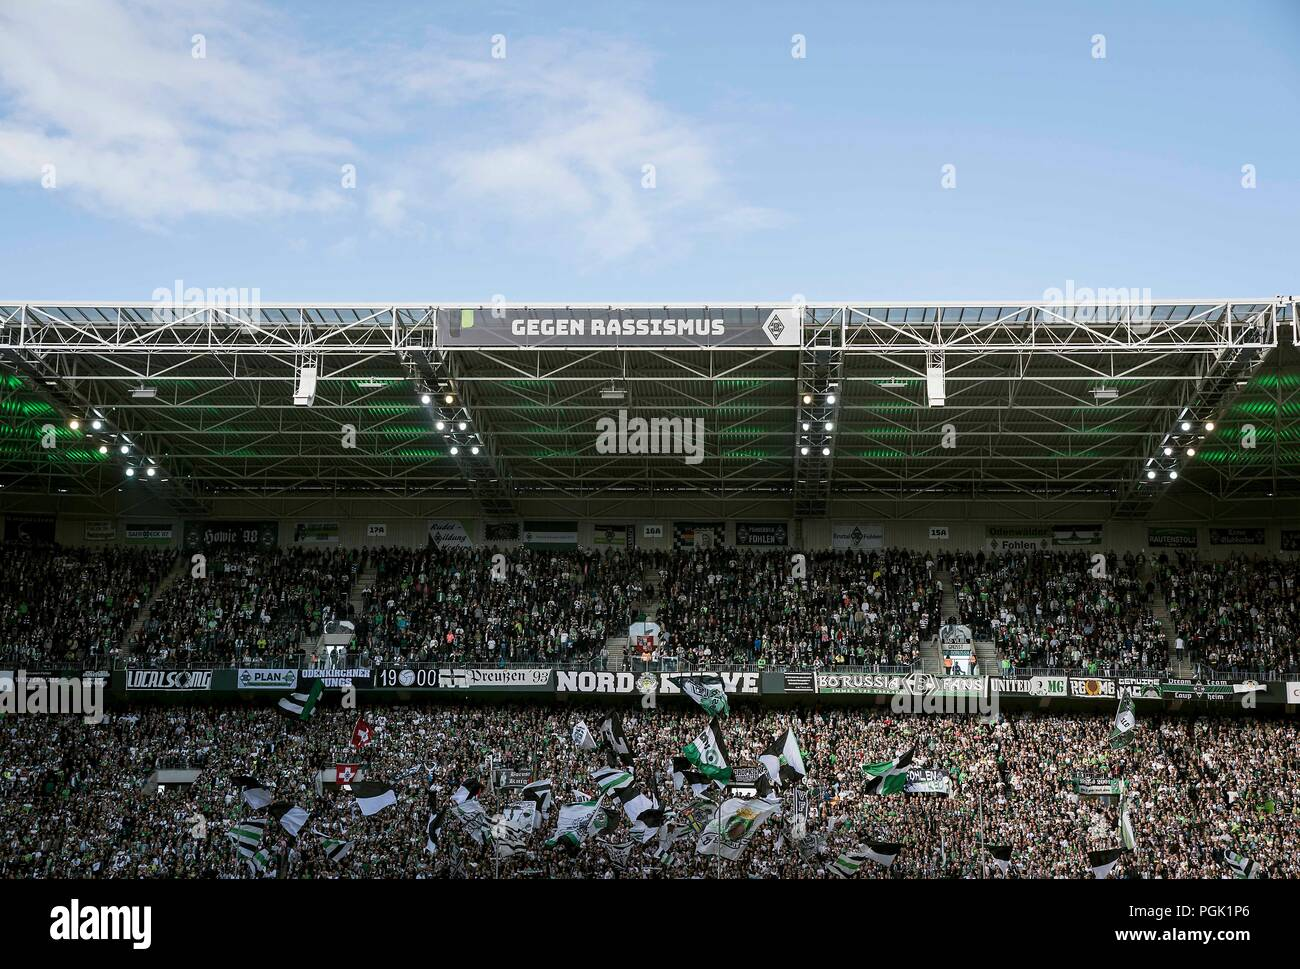 Feature, Fankurve MG with flags and flags, north curve, with a banner versus racism, Soccer 1.Bundesliga, 1.matchday, Borussia Monchengladbach (MG) - Bayer 04 Leverkusen (LEV) 2: 0, on 25.08.2018 in Borussia Monchengladbach / Germany. ## DFL regulations prohibit any use of photographs as image sequences and / or quasi-video ## | usage worldwide - Stock Image